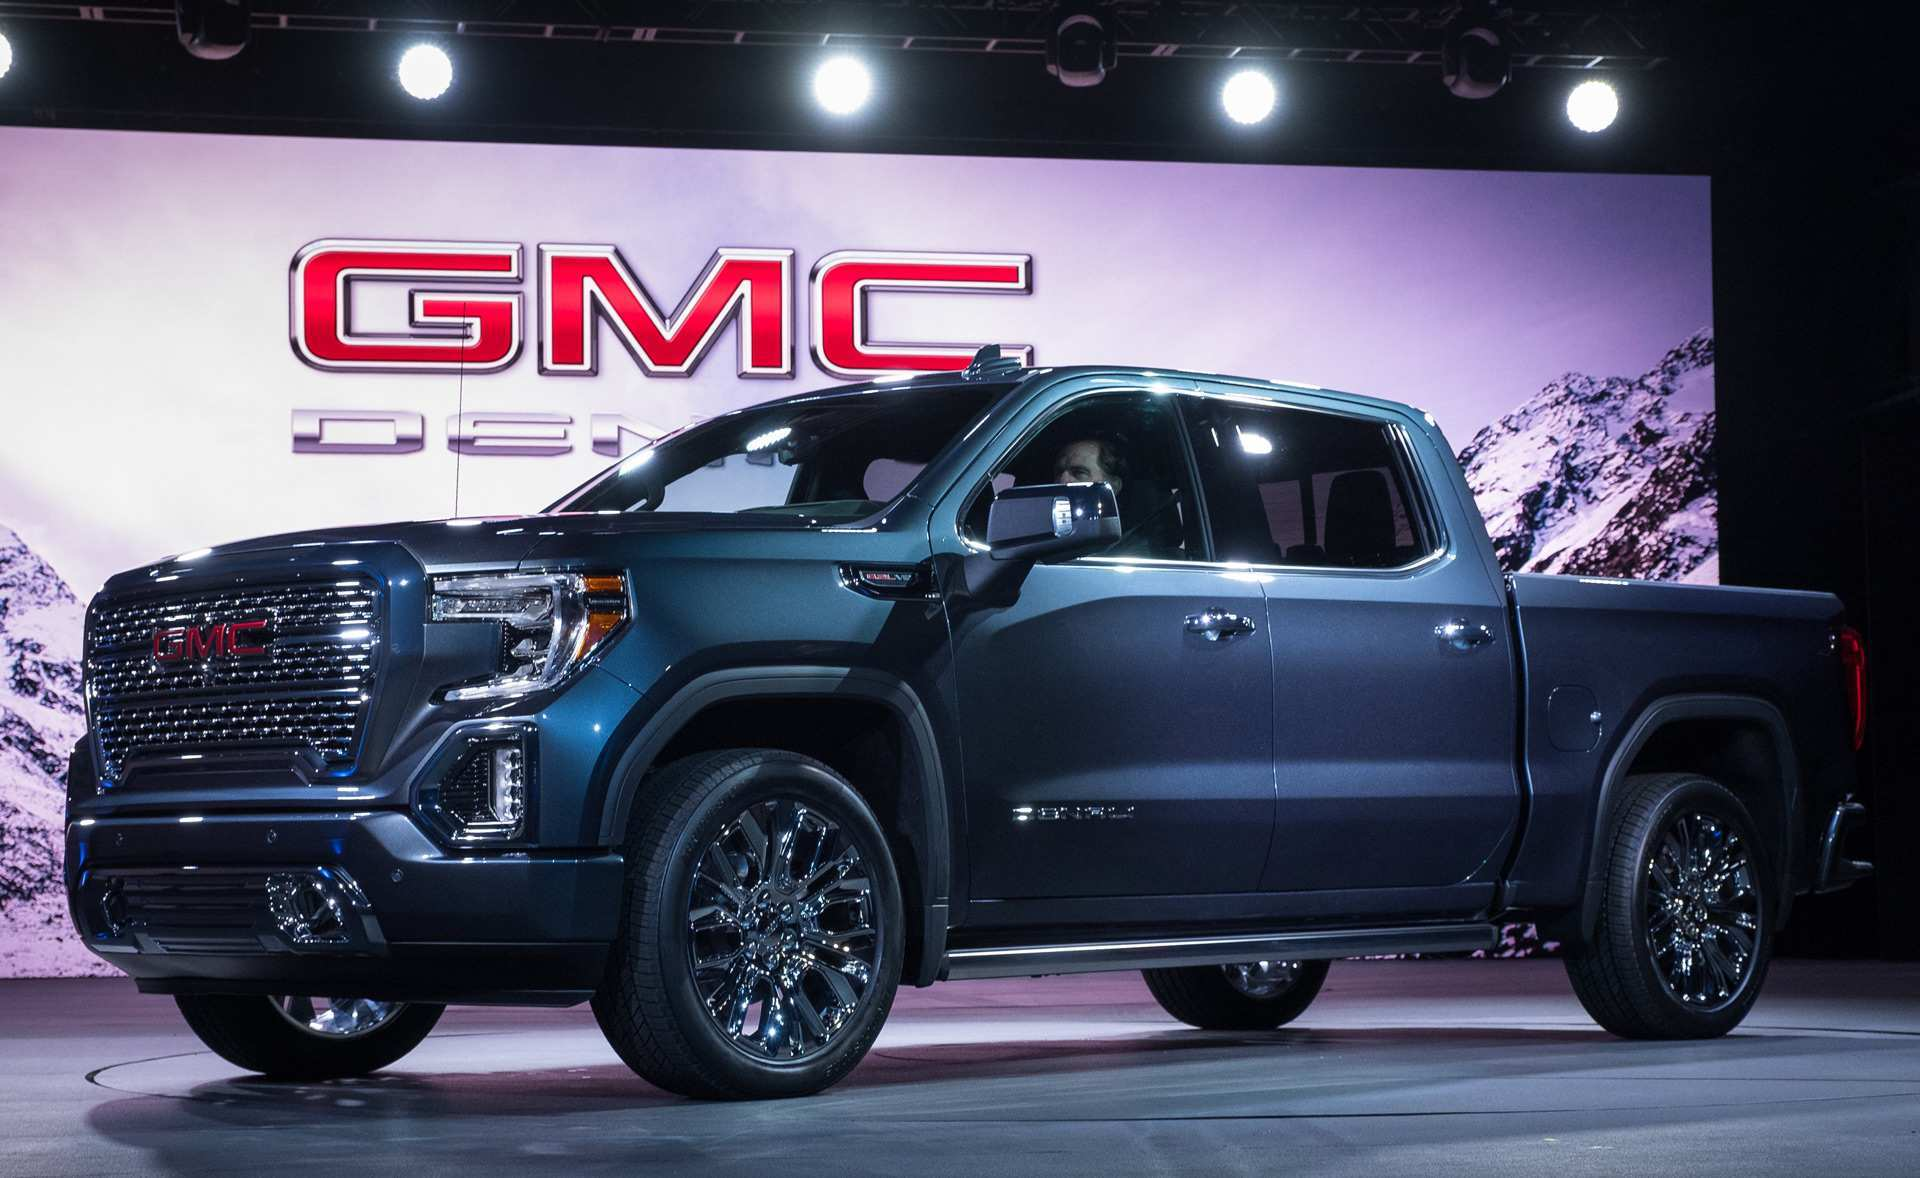 38 Gallery of 2019 Gmc 2500 Tailgate Concept for 2019 Gmc 2500 Tailgate